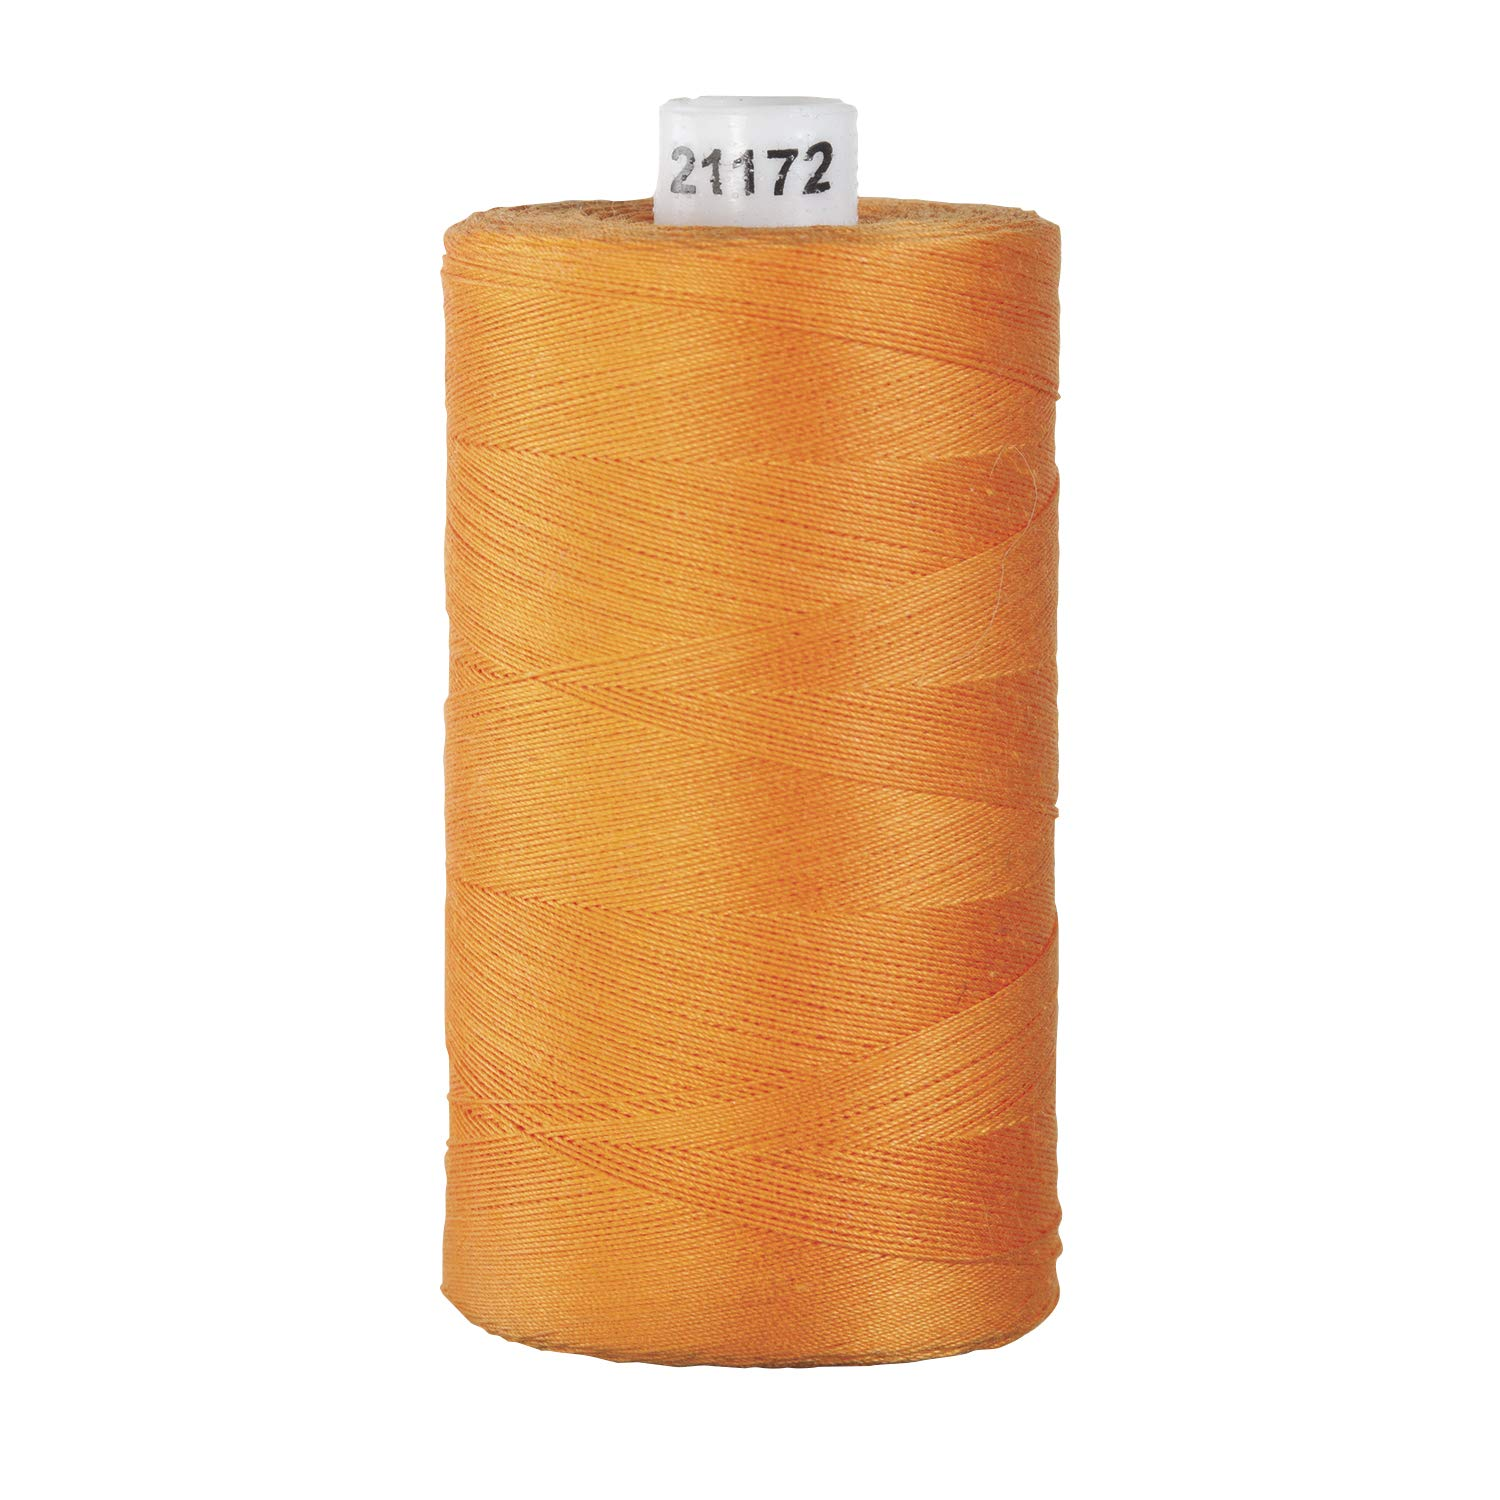 Connecting Threads 100/% Cotton Thread Sets Monochrome - Set of 10 1200 Yard Spools